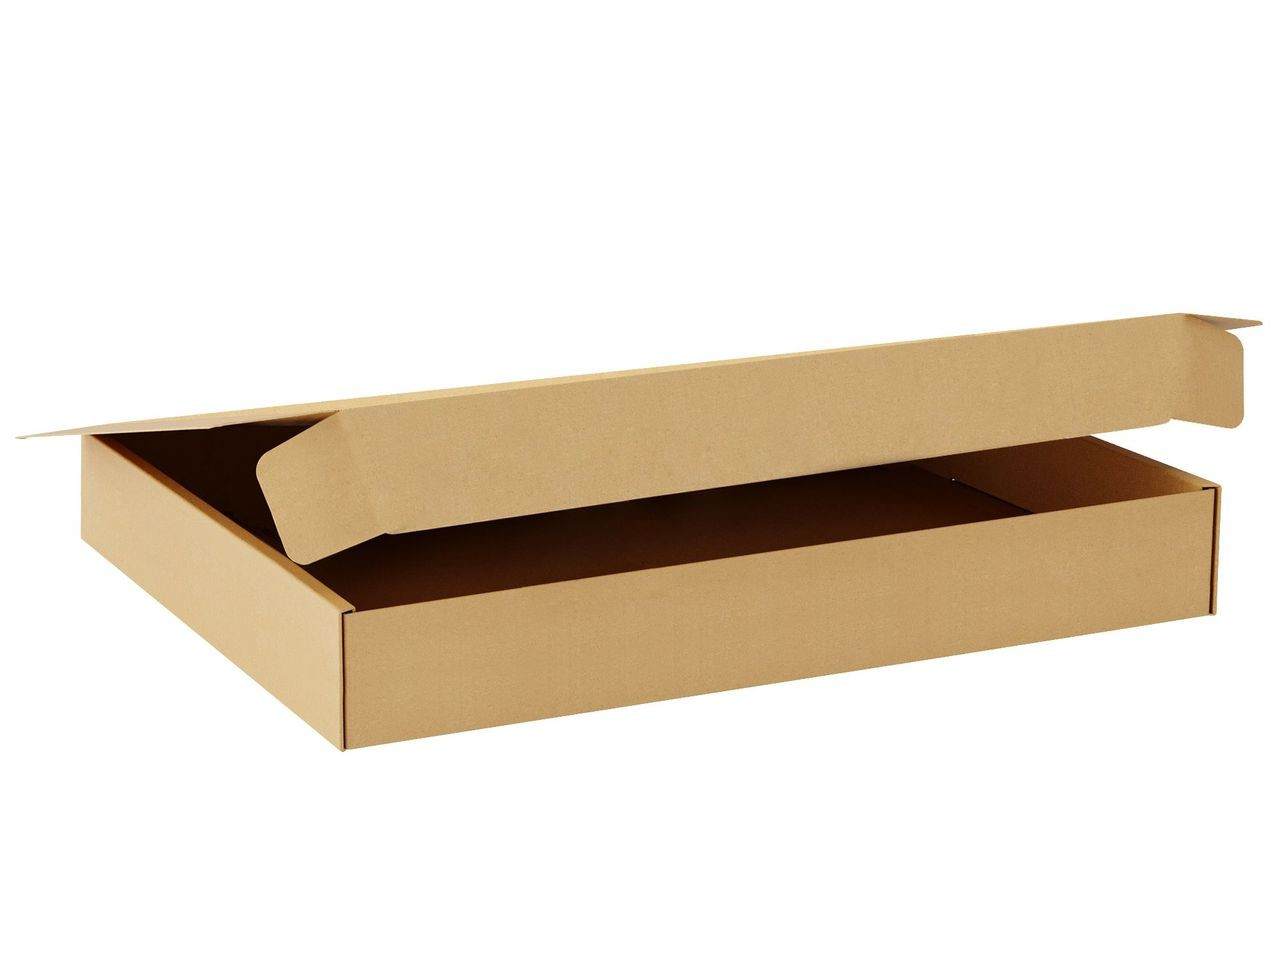 "TOTALPACK® 12 1/2 x 9 1/2 x 2 1/2"" Single Wall Corrugated Boxes ""Interlock Die-Cut"" 25 Units"